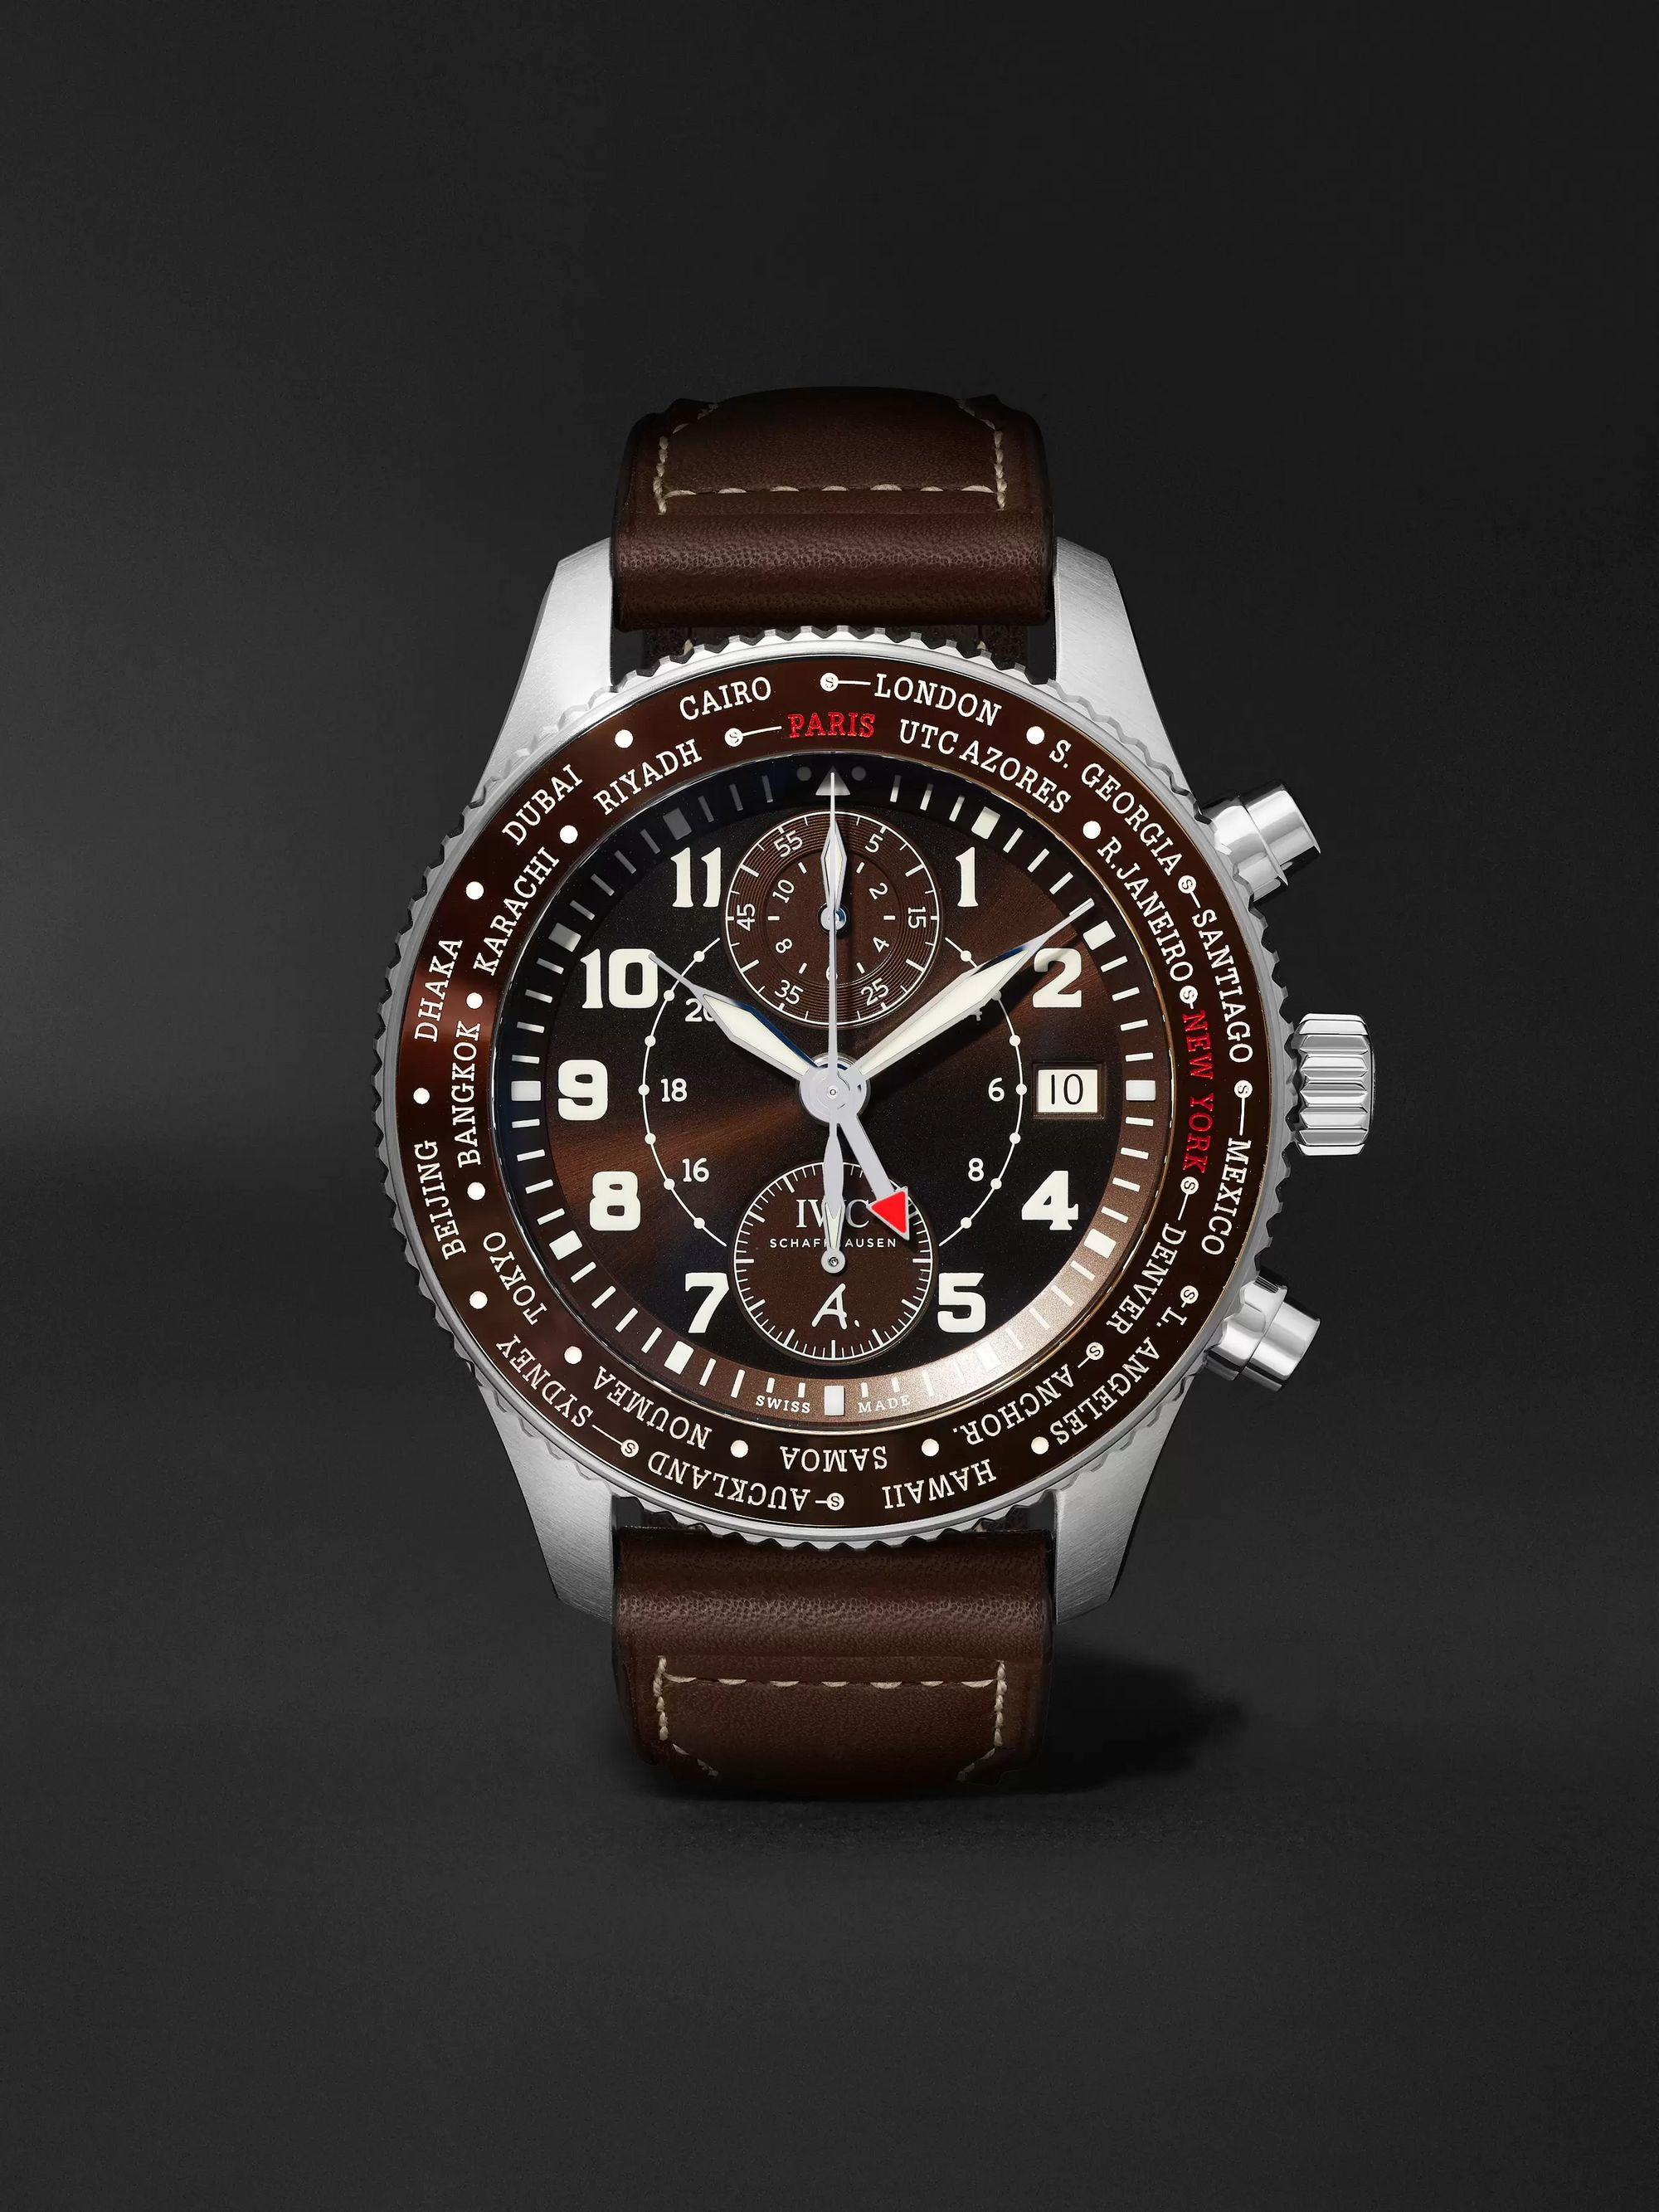 IWC SCHAFFHAUSEN Pilot's Timezoner Limited Edition Chronograph 46mm Stainless Steel and Leather Watch, Ref. No. IW395003